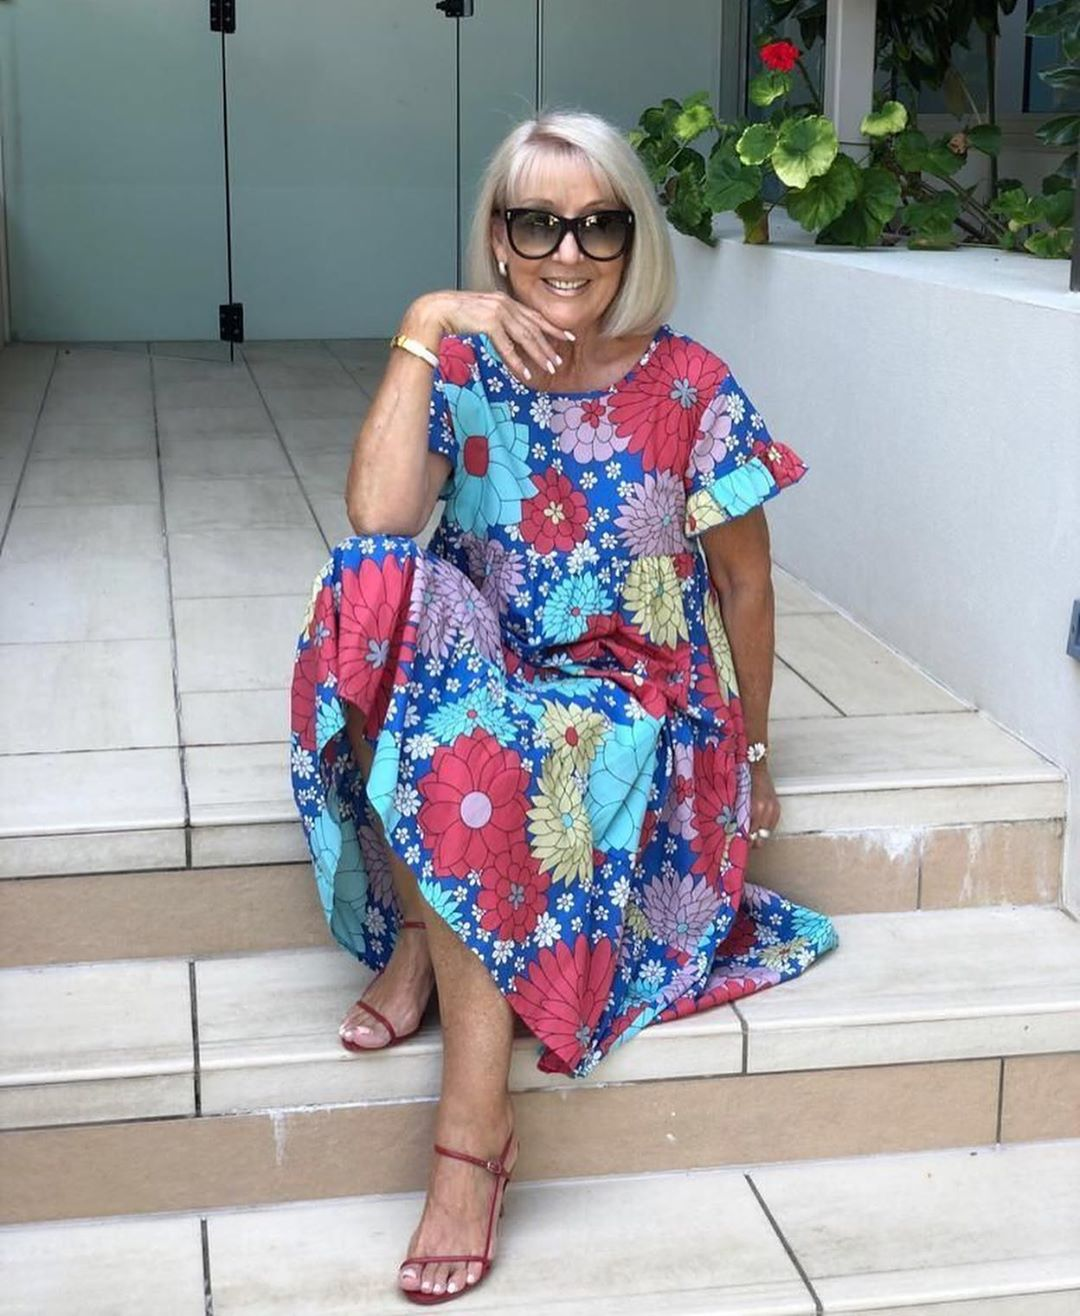 Beach dresses for women 50 and over